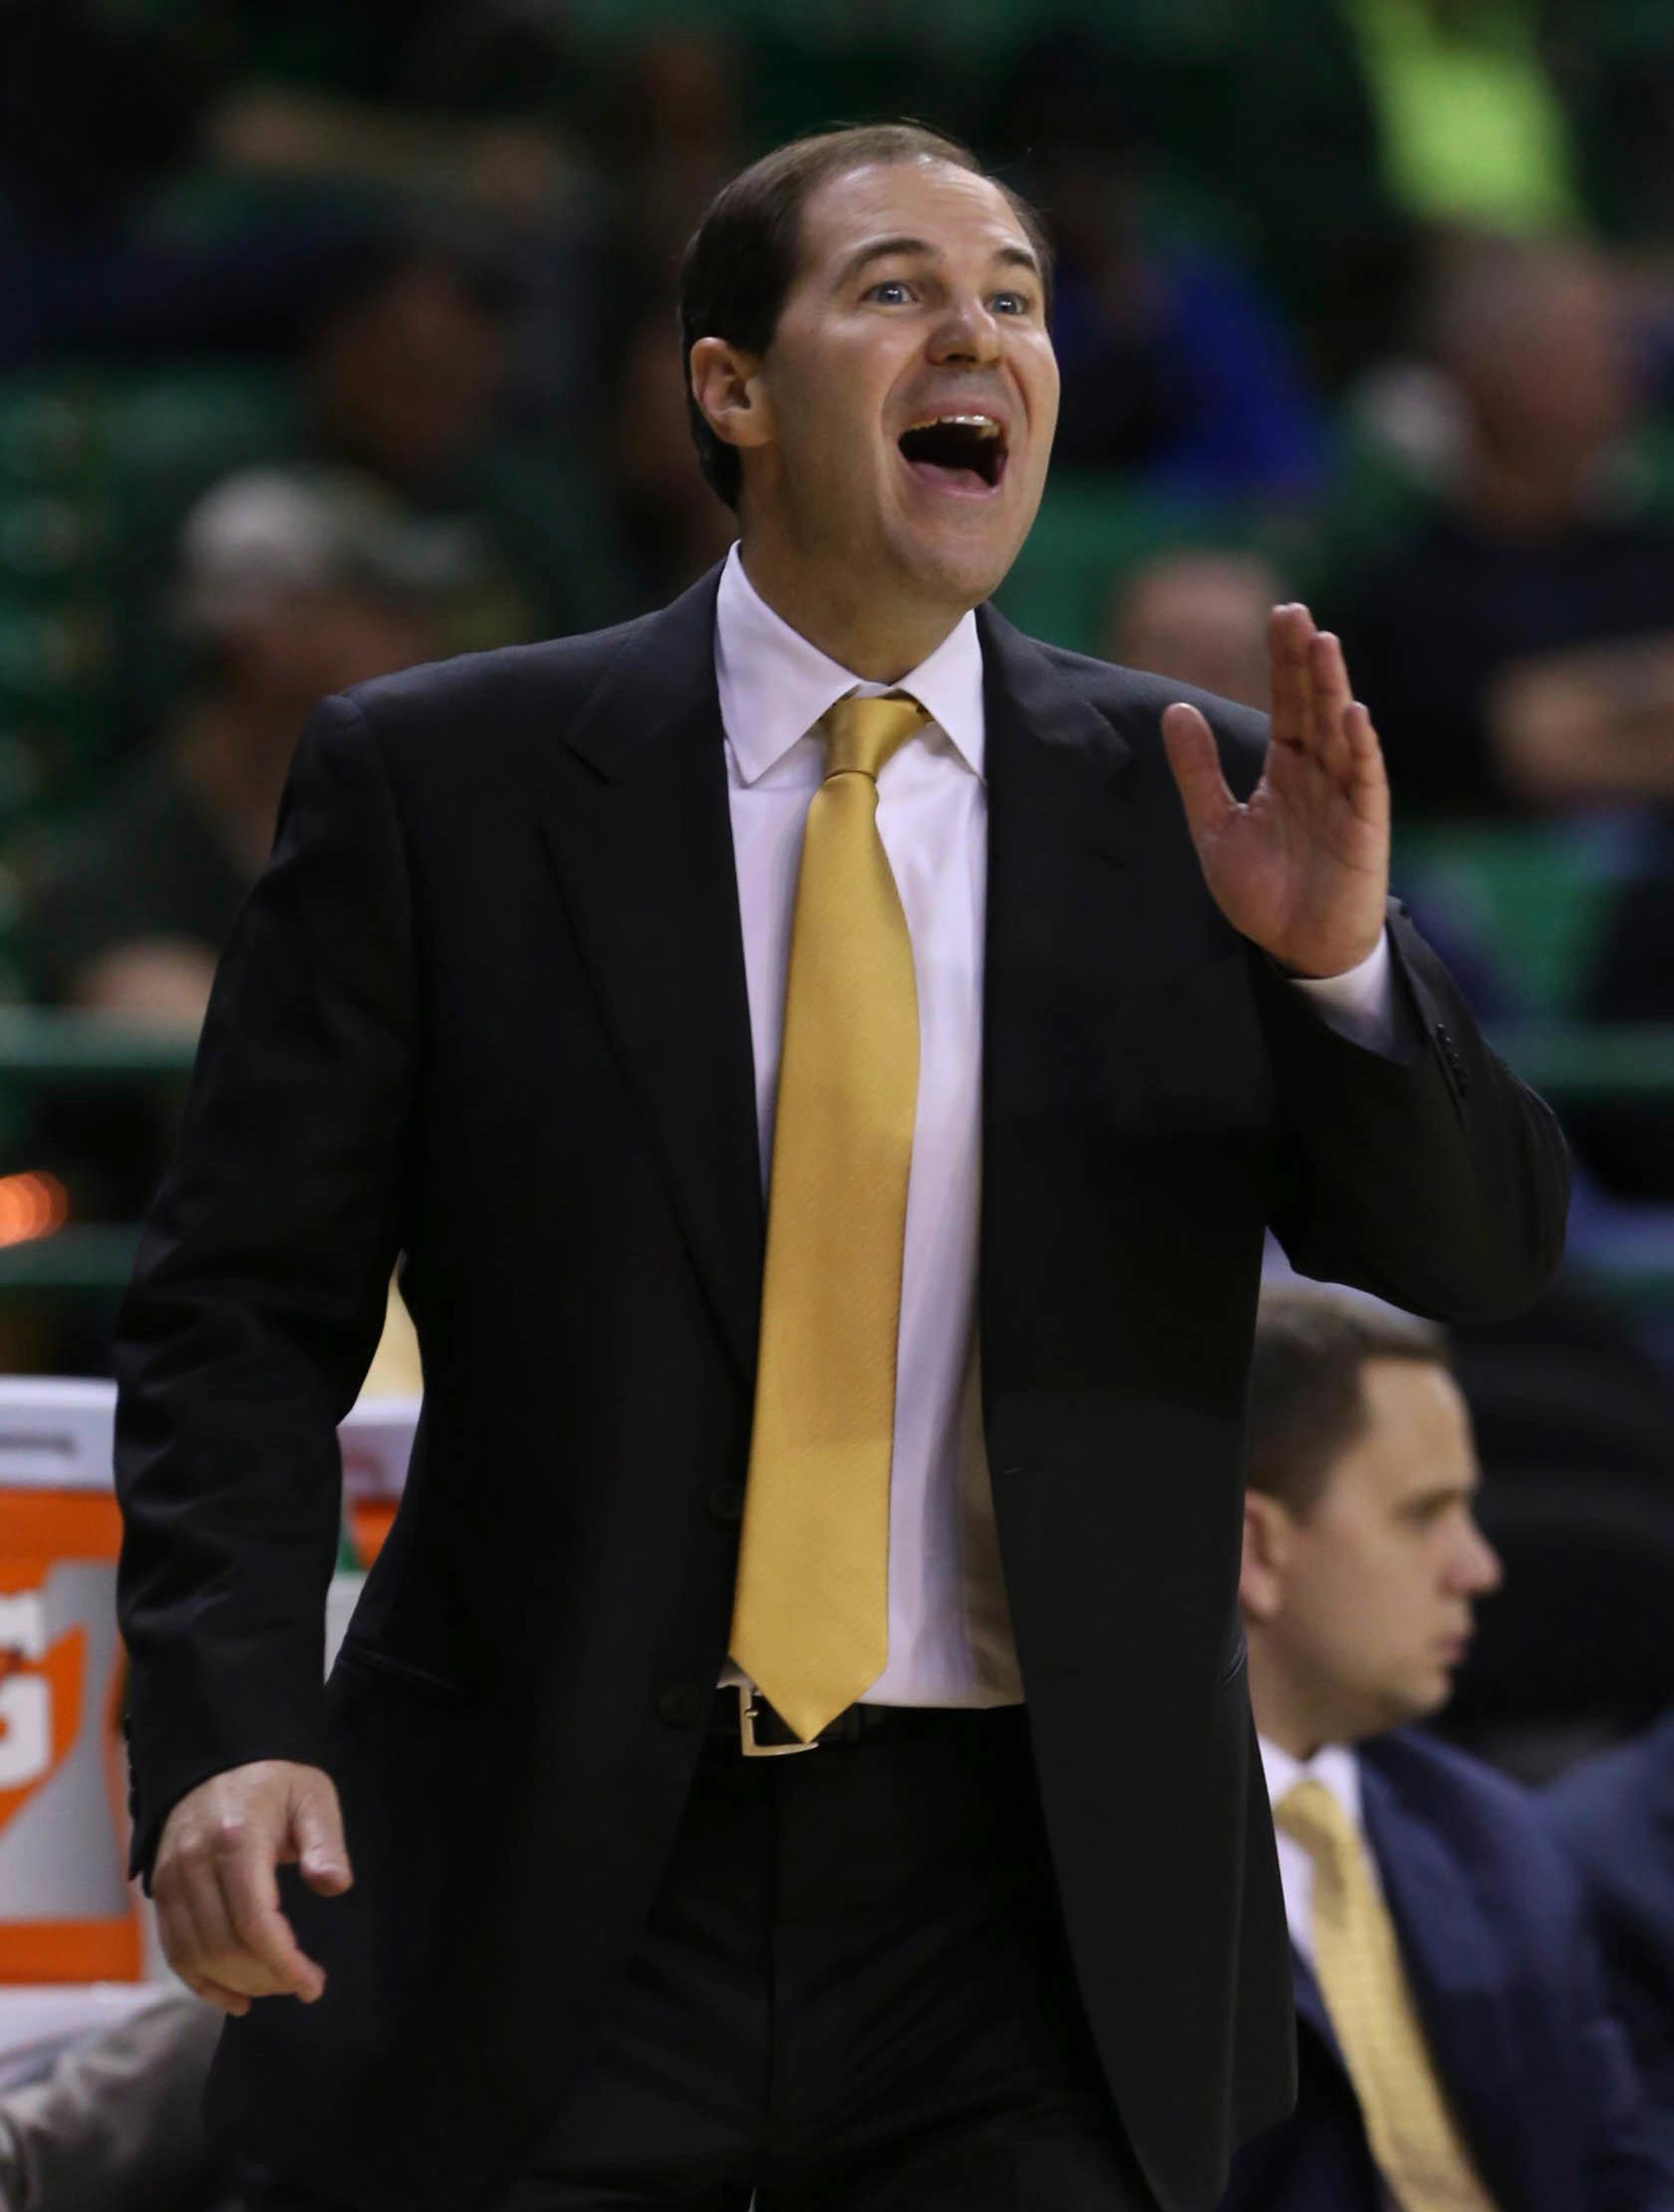 Baylor head coach Scott Drew calls a play against Central Arkansas in the first half of a NCAA college basketball game, Friday, Nov. 10, 2017, in Waco, Texas. (AP Photo/Jerry Larson)